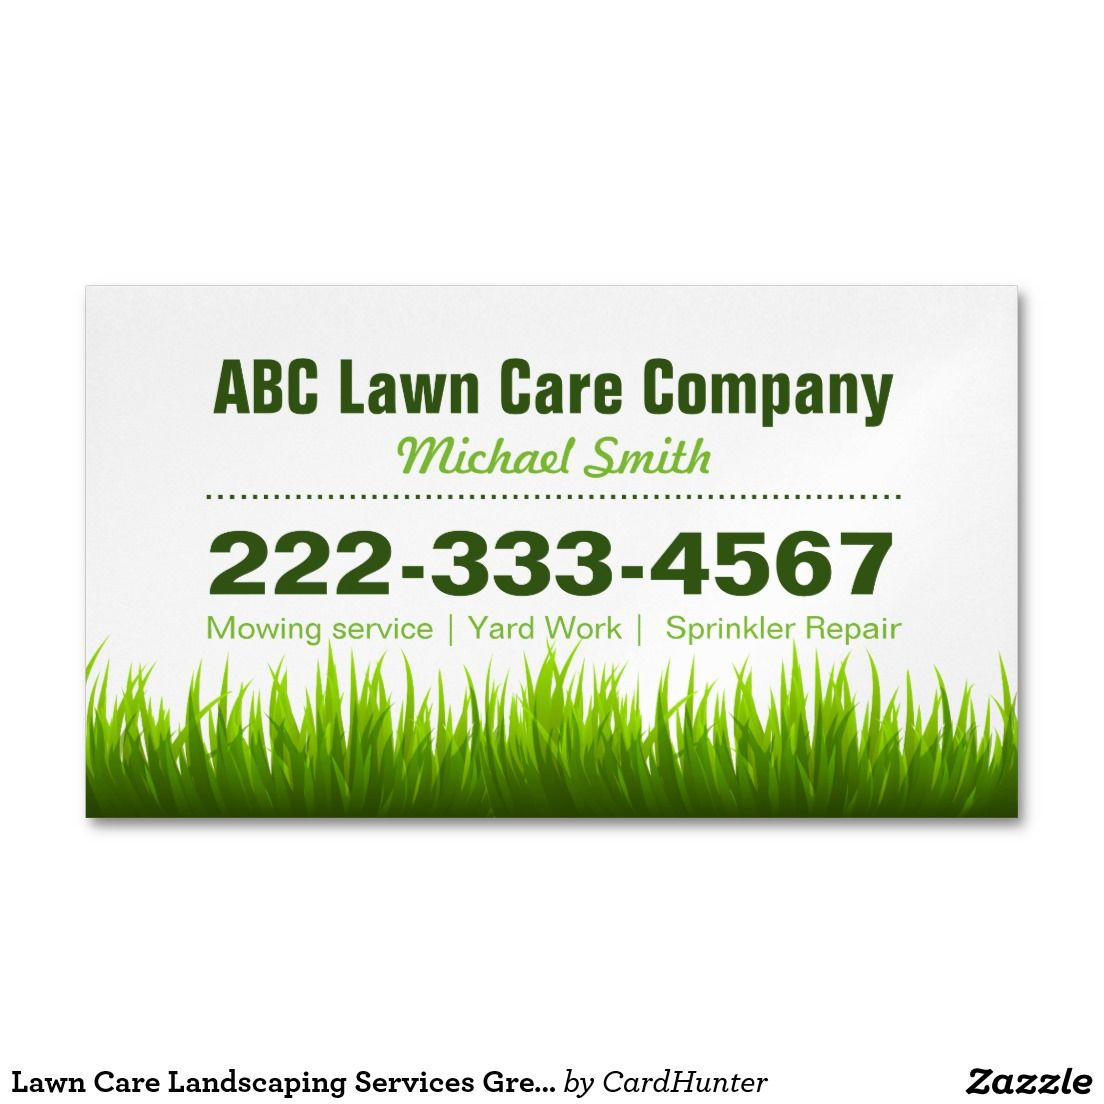 lawn care landscaping services green grass style business card